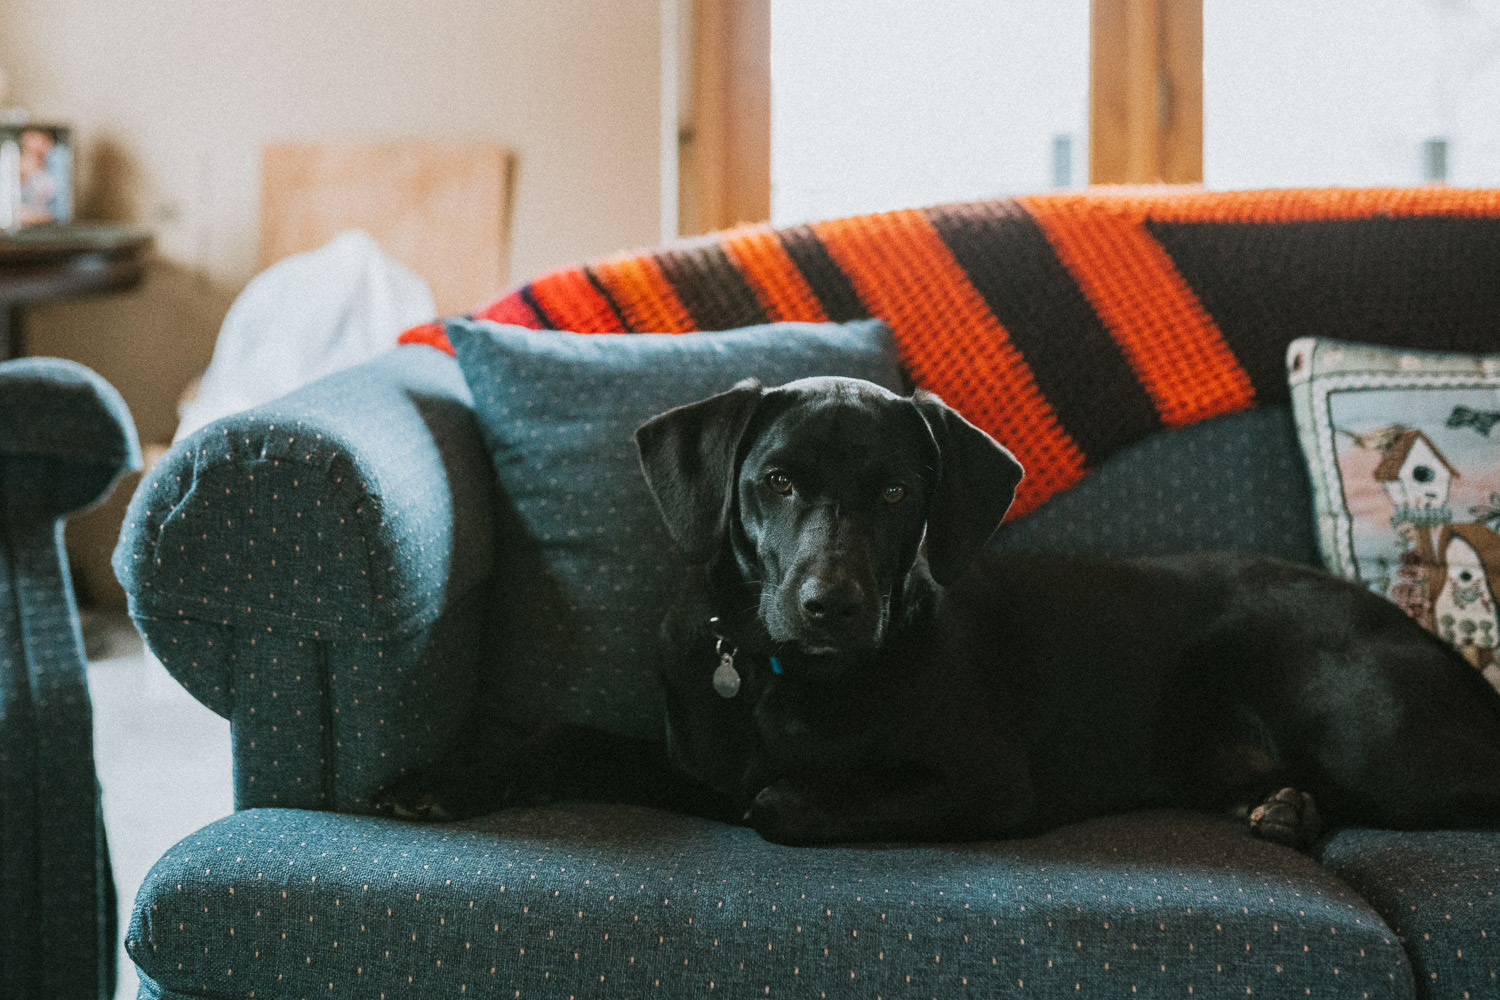 A black lab puppy lies on a couch.